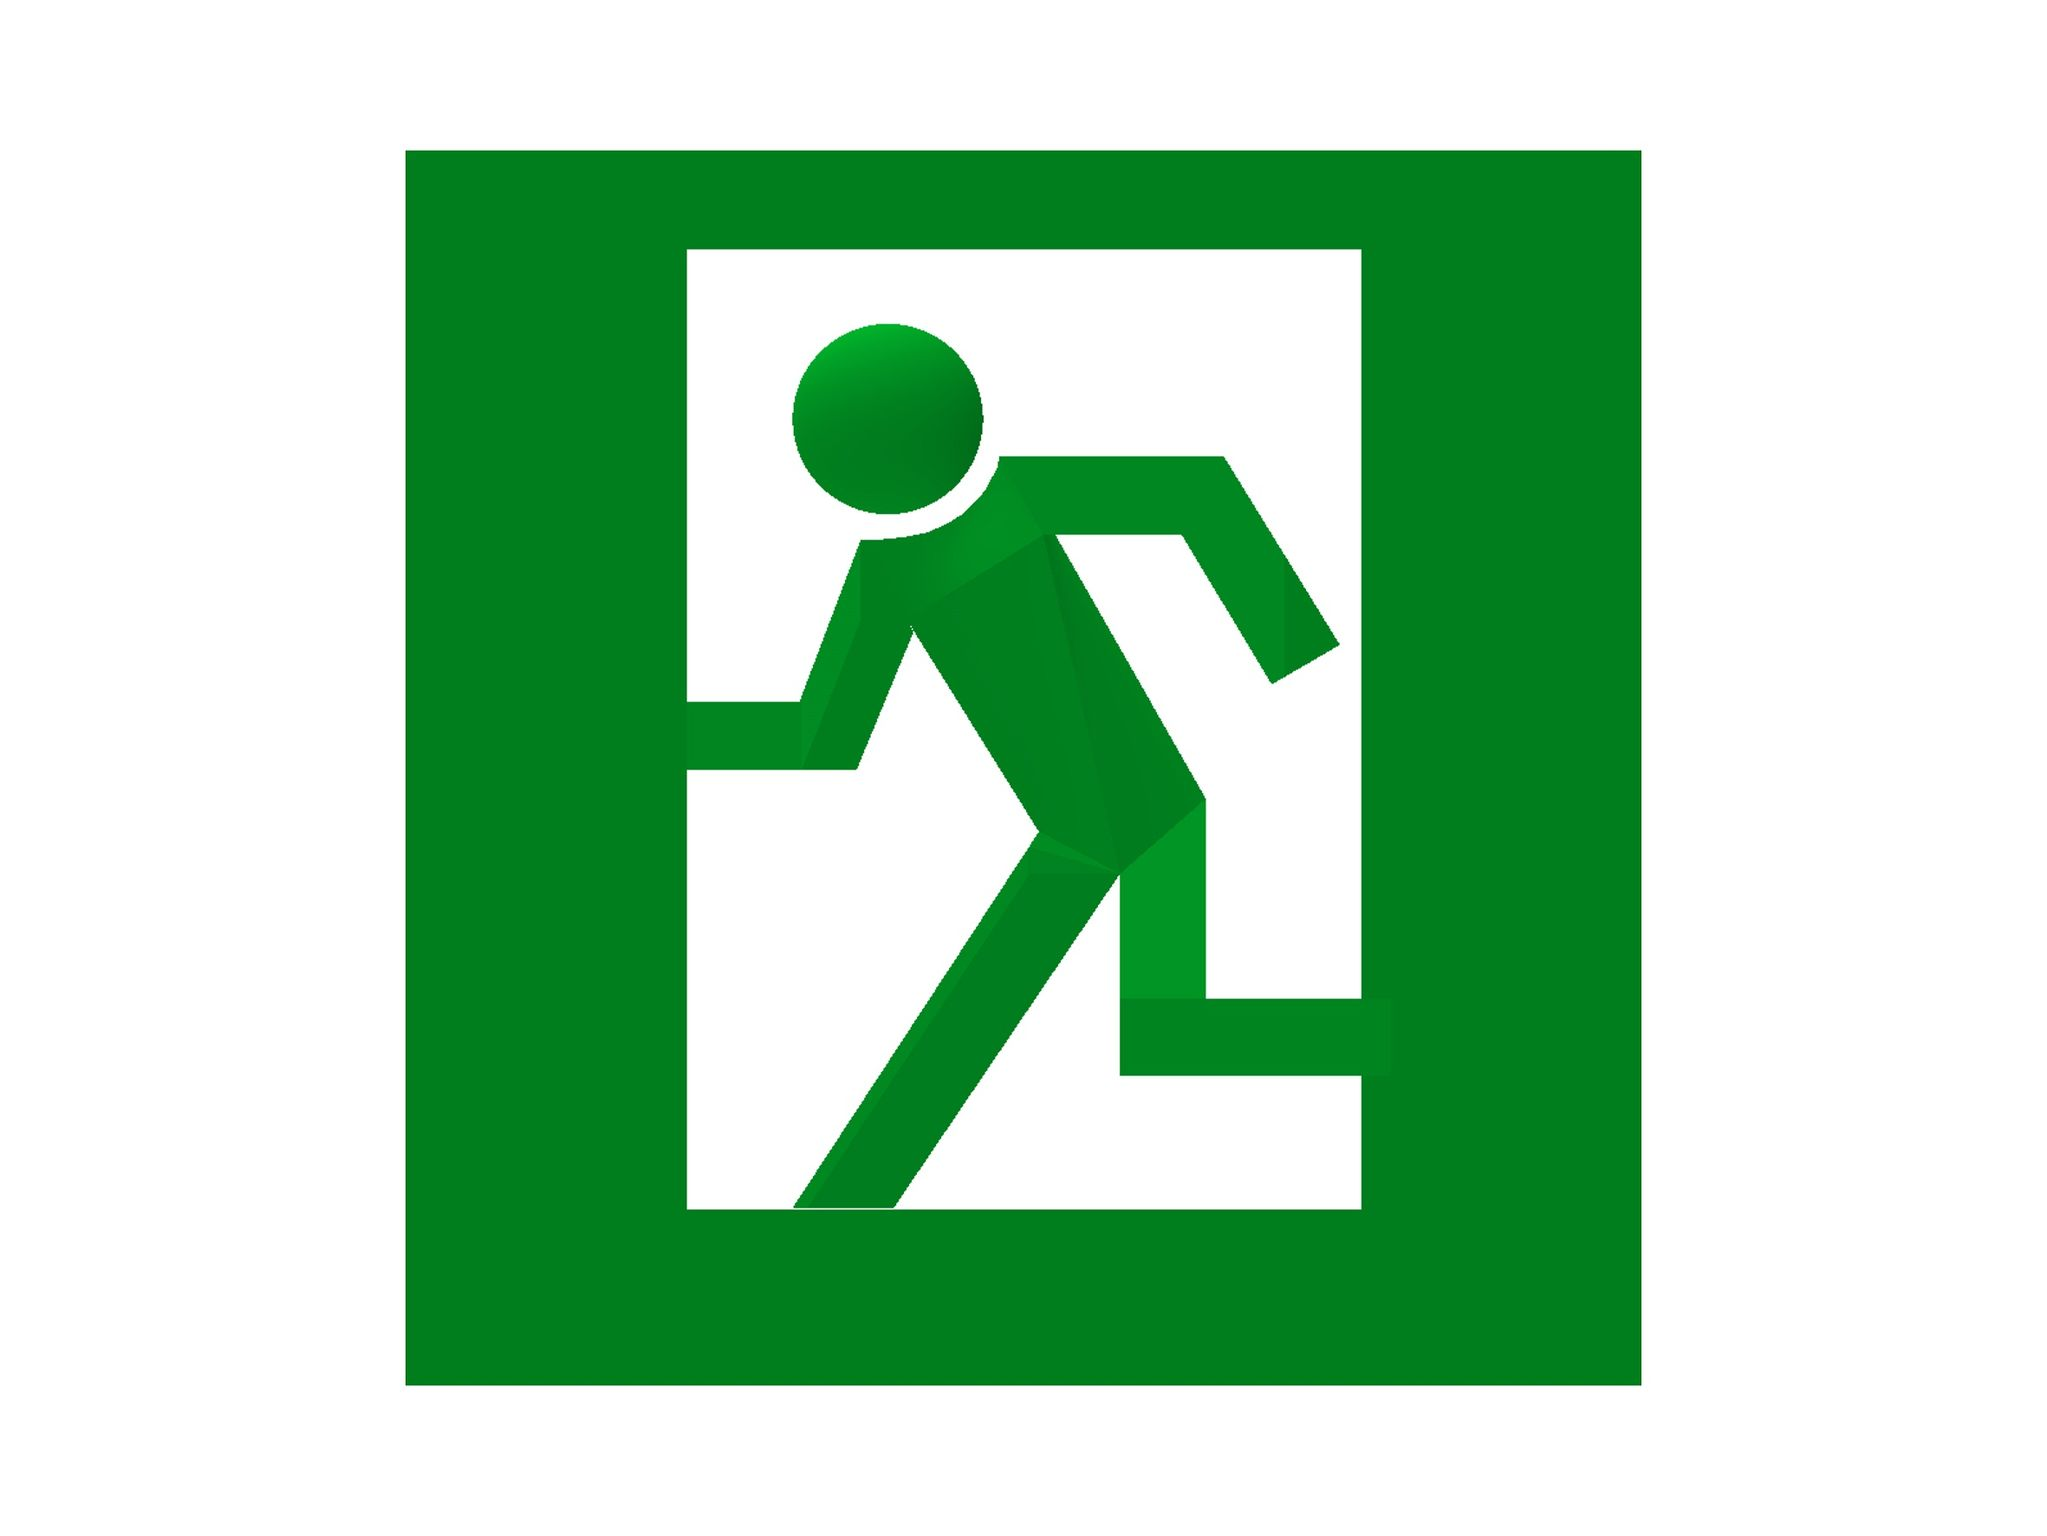 Hfeel entry if world design guide have you ever felt the man in emergency exit sign lonely what if there was another person behind the door to help him buycottarizona Images